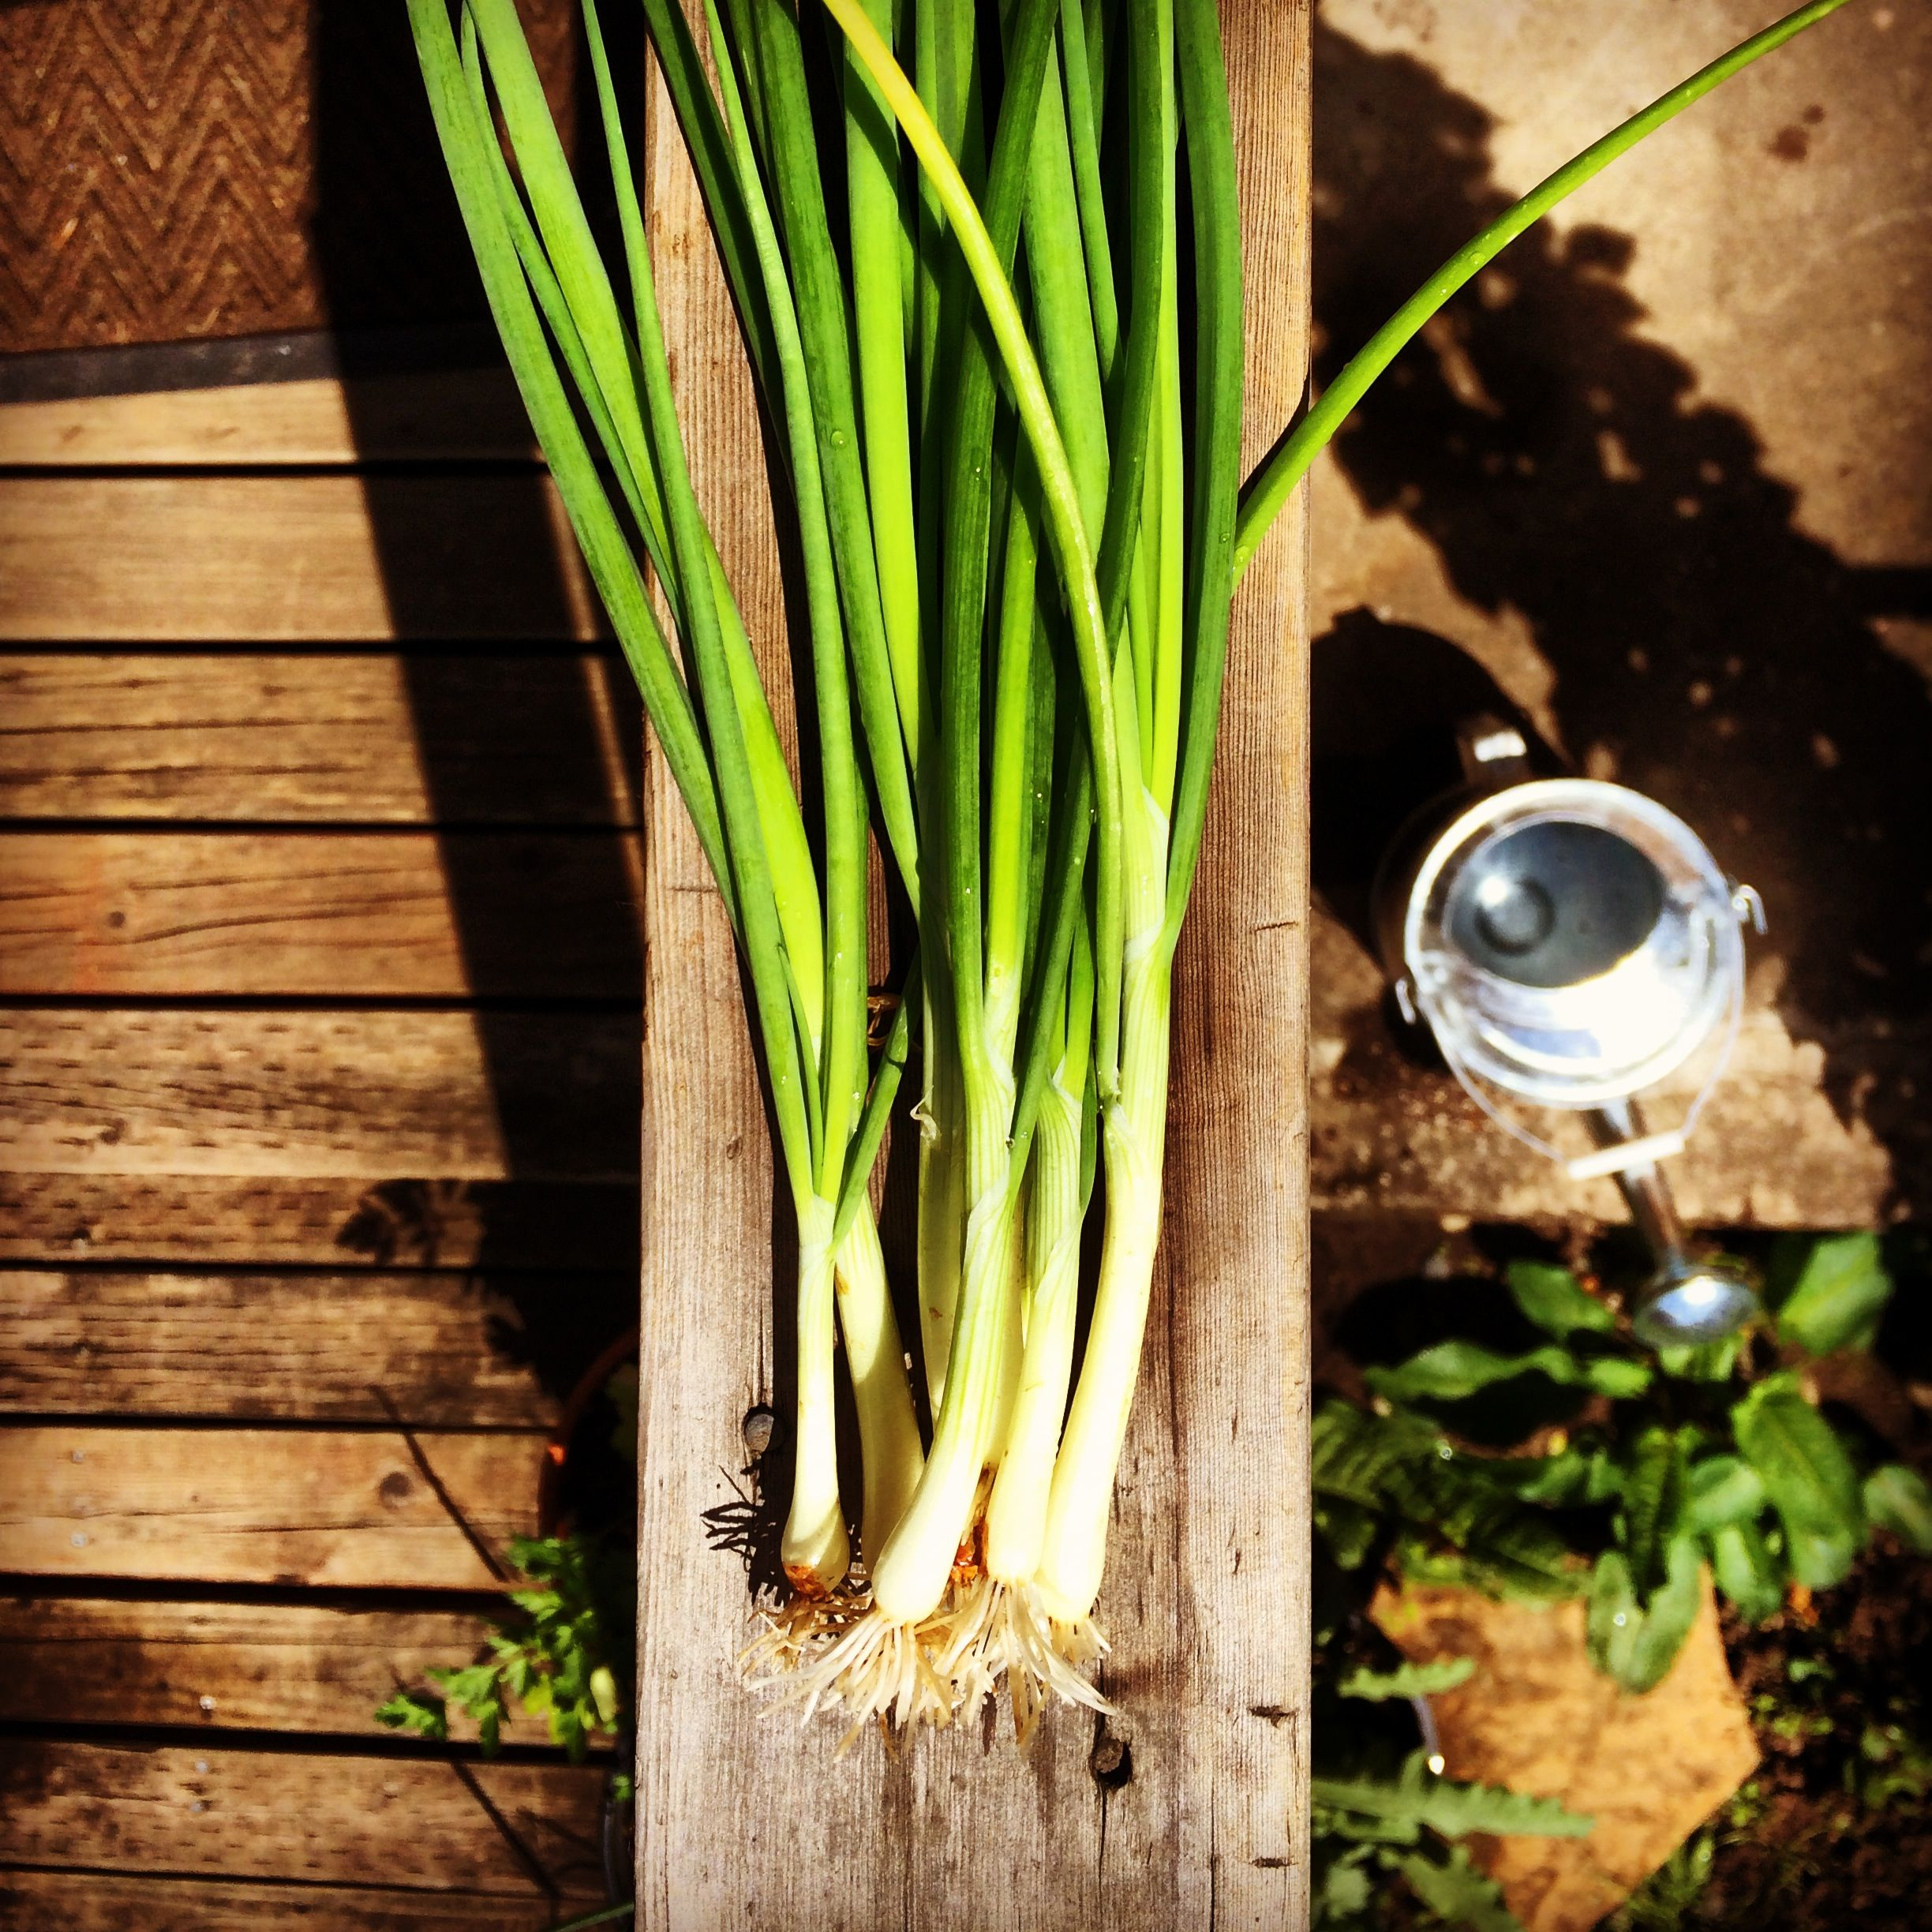 Scallions from my kitchen garden